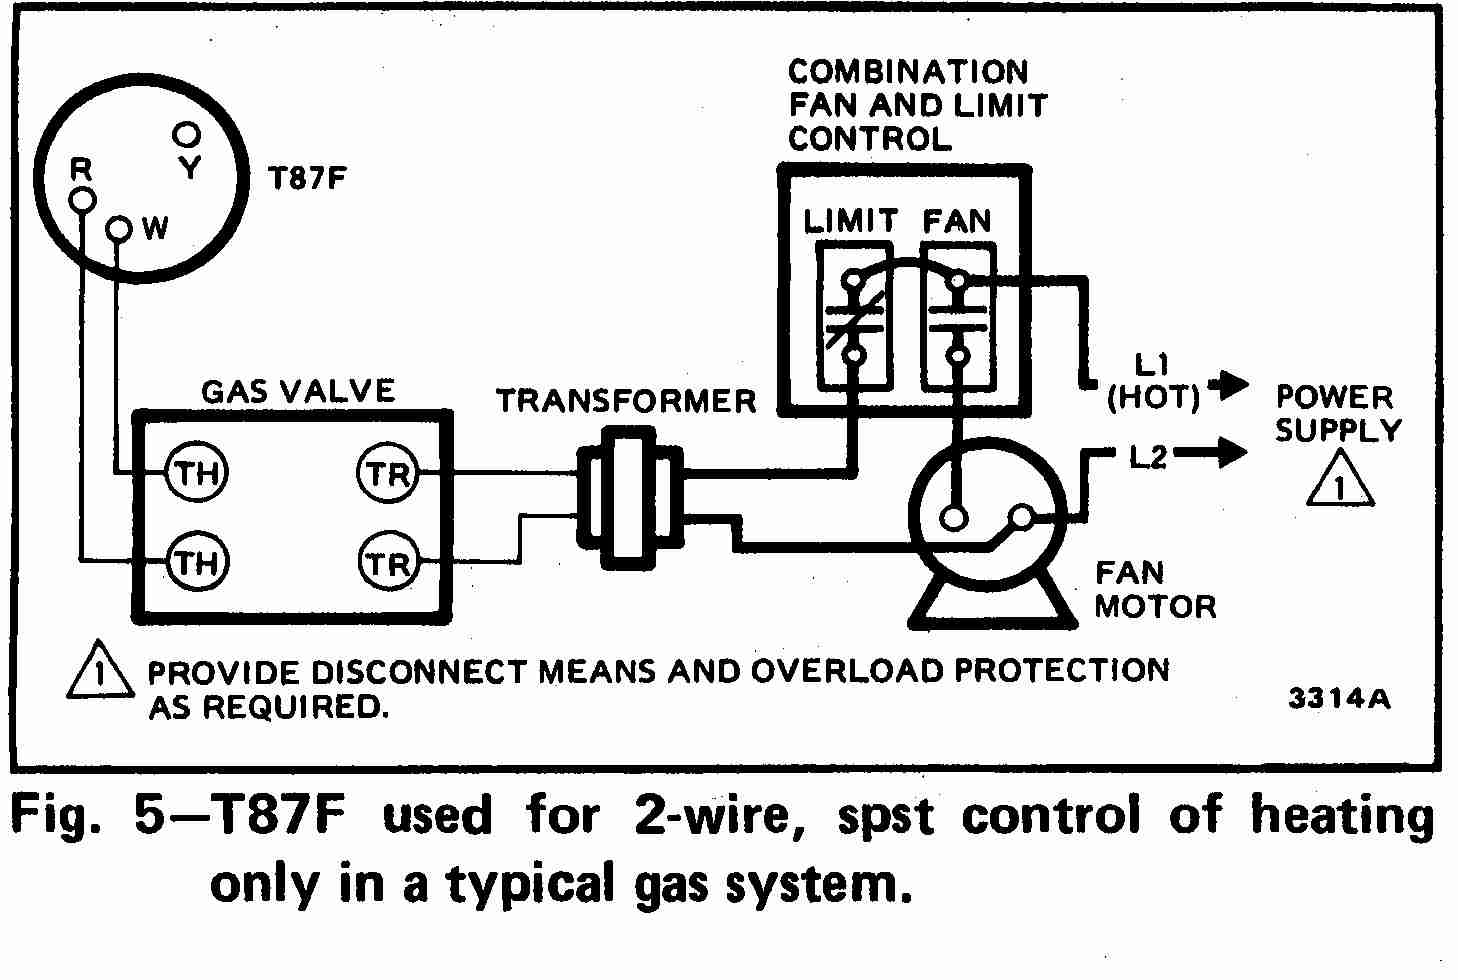 home heating thermostat wiring diagram wiring diagram database furnace wiring diagram older furnace room thermostat wiring diagrams for hvac systems mechanical thermostat wiring home heating thermostat wiring diagram